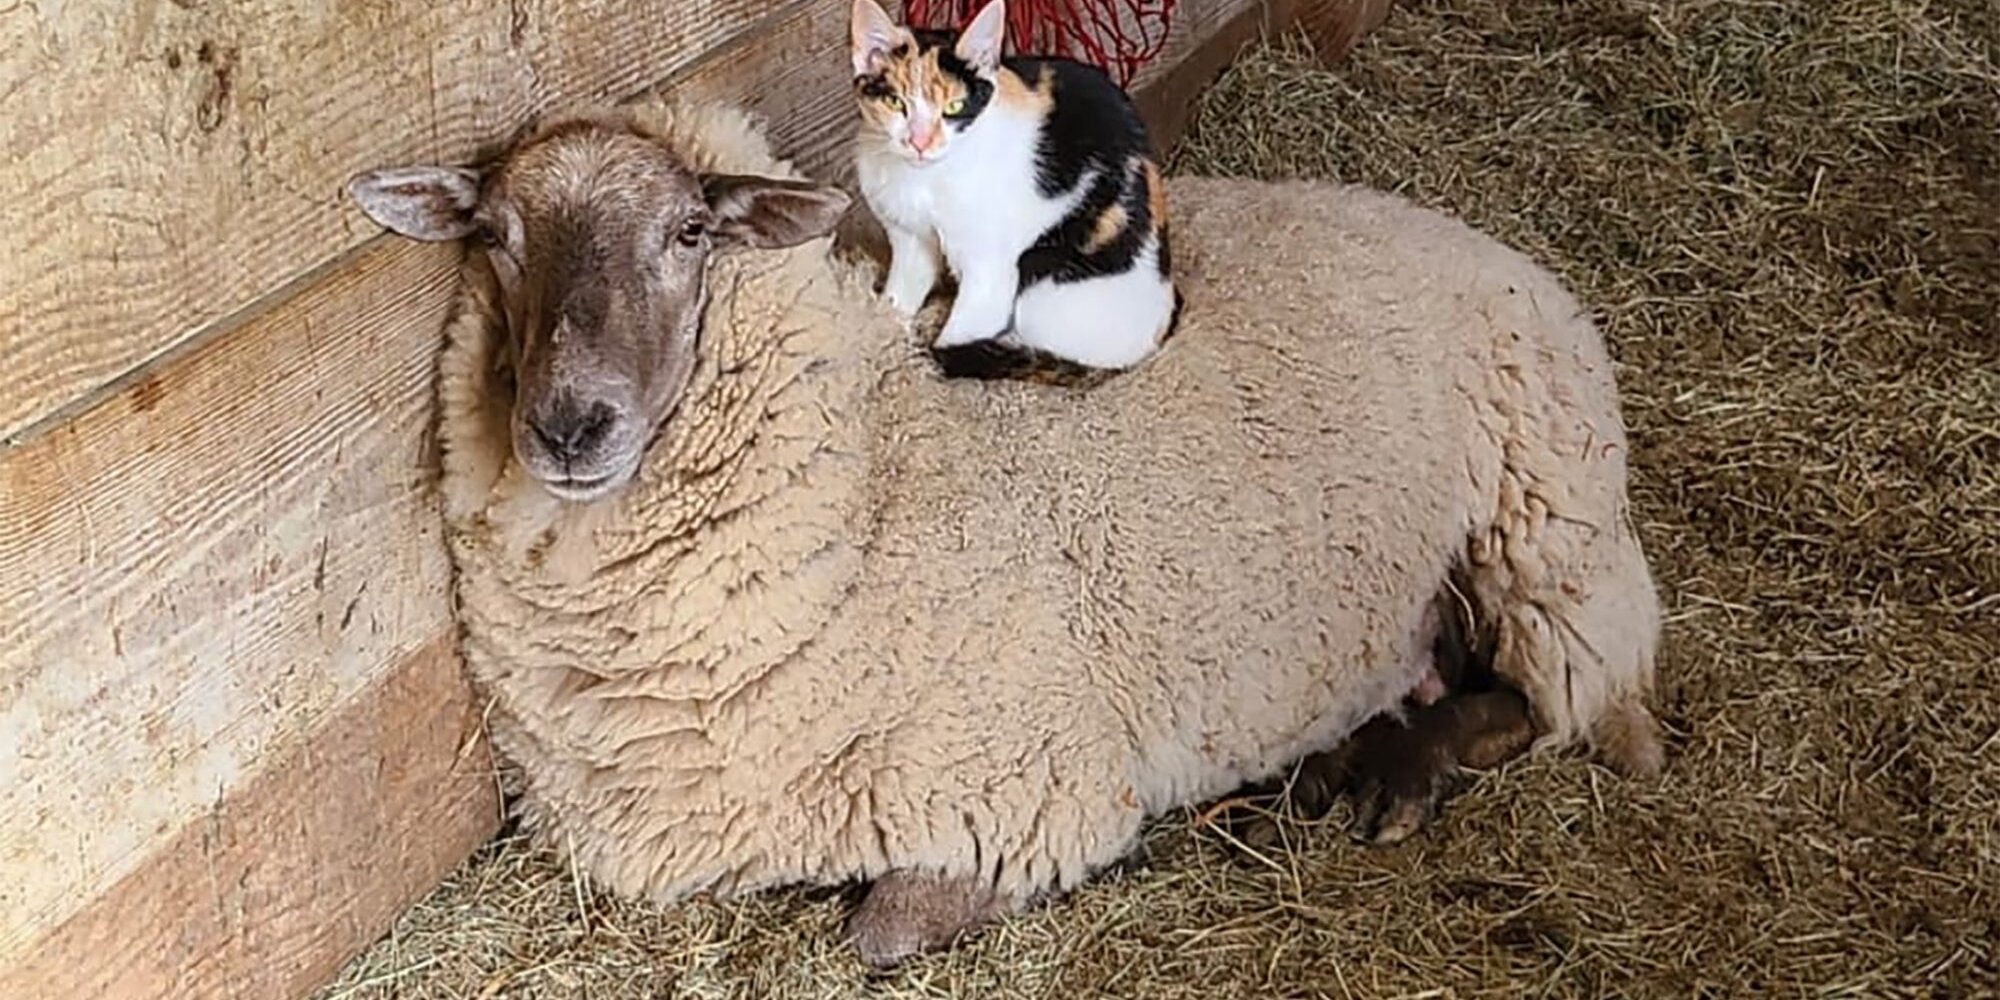 Luci the Cat and Waffles the Sheep Are Fluffy BFFs Despite Their Differences